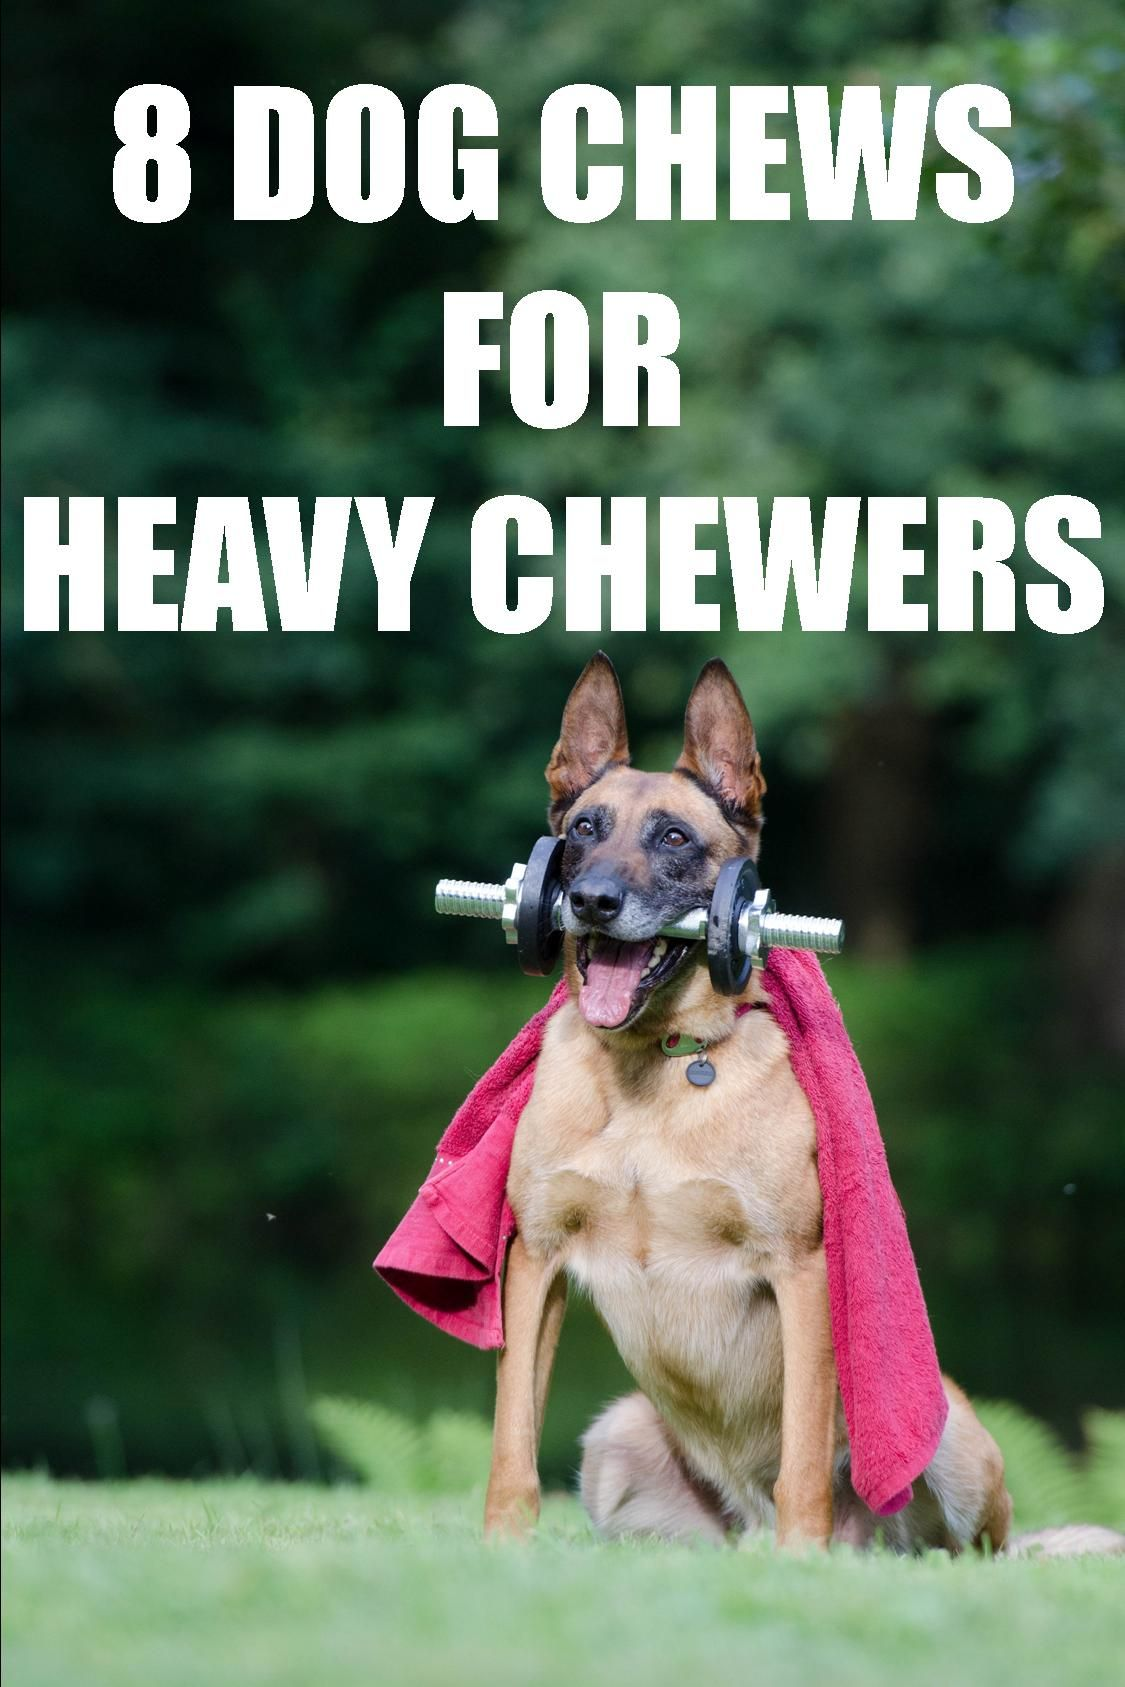 8 Best Dog Chews For Heavy Chewers #dentalcare